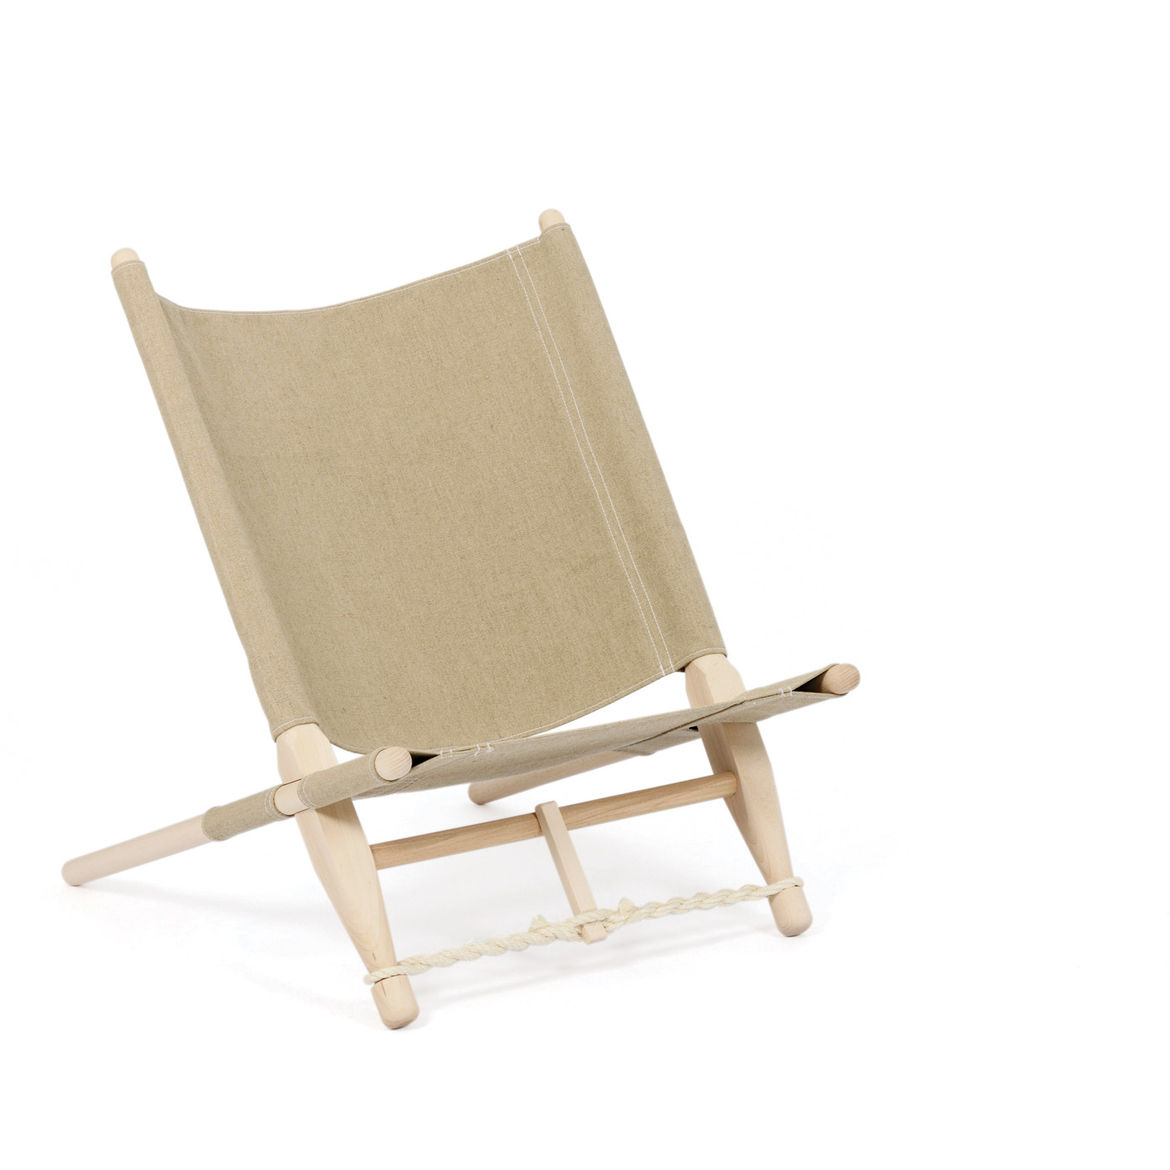 Holiday gift guide 2016 Dwell Store Graduates picks like the portable lounge chair from OGK